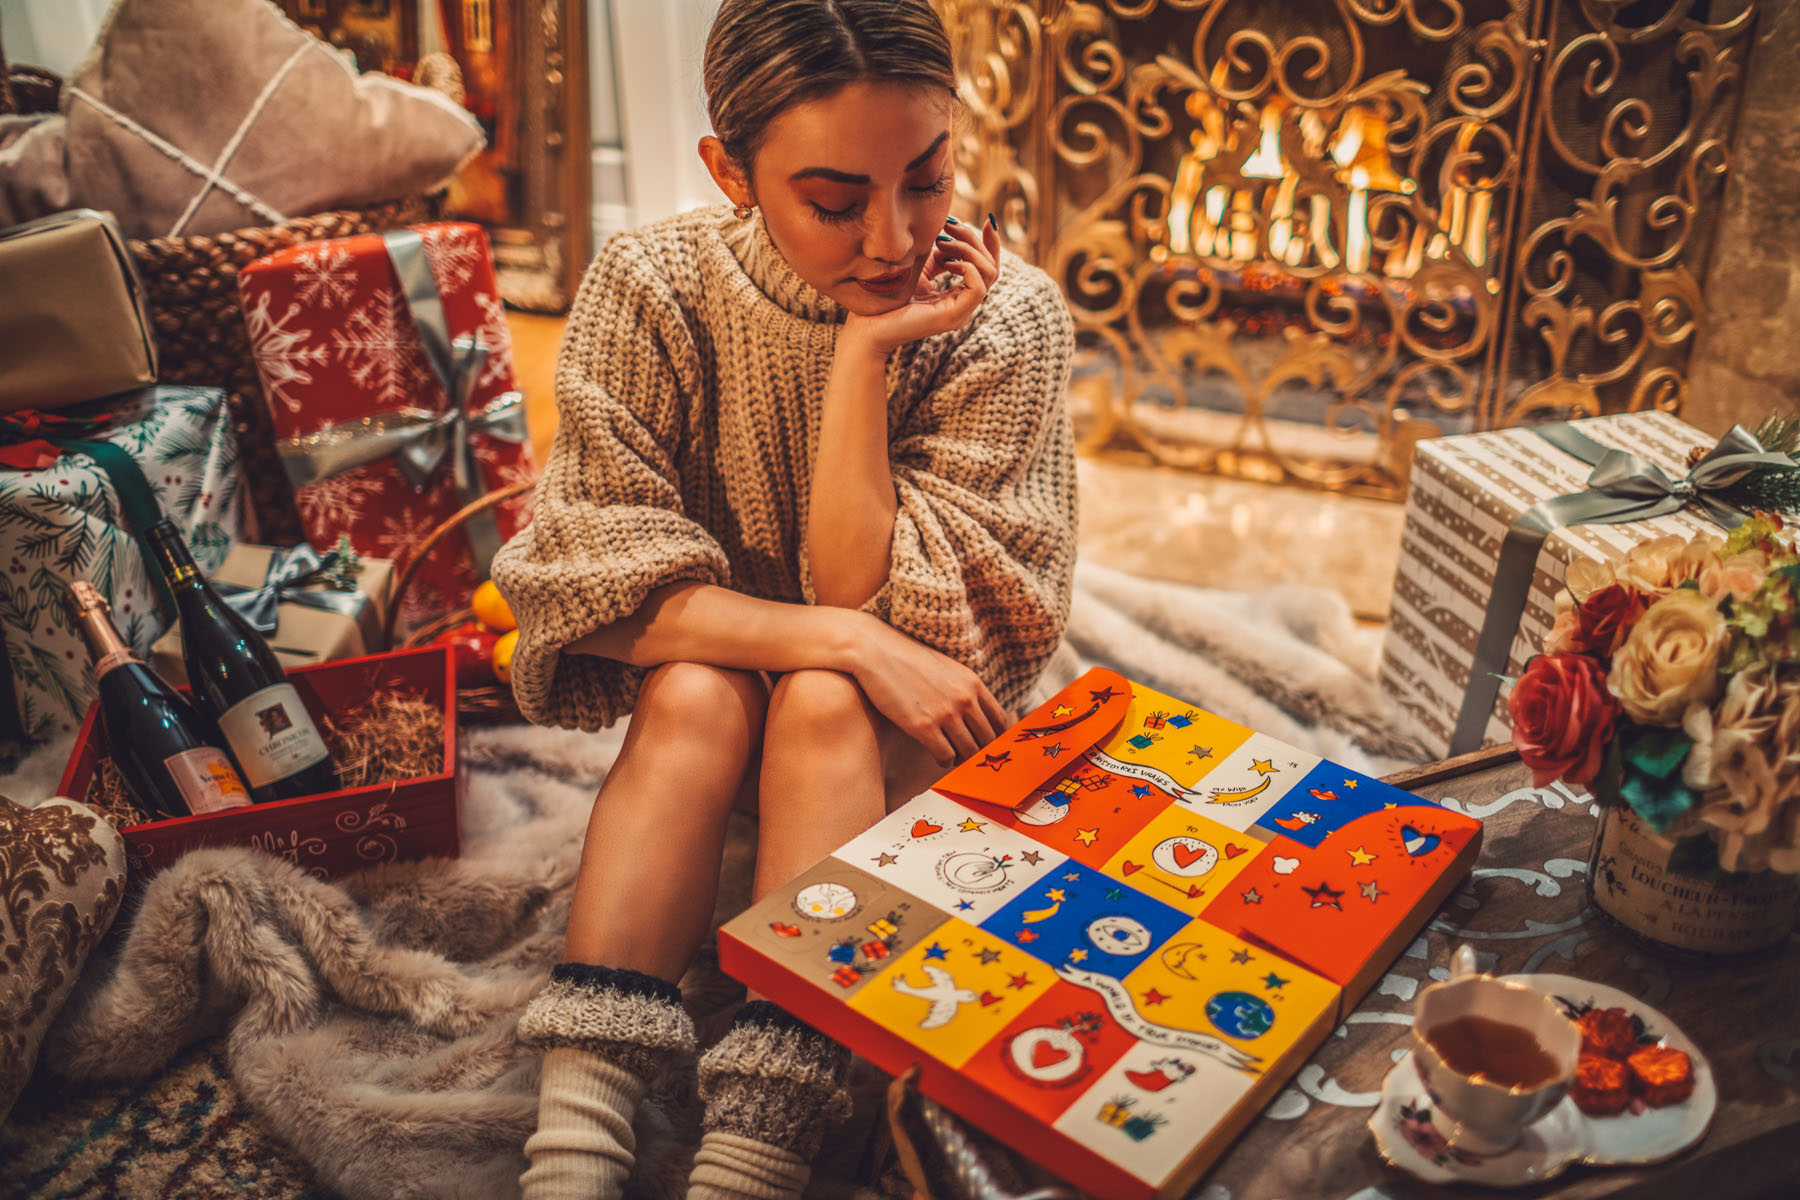 Advent Calendar Holiday Gift from L'Occitane // Notjessfashion.com